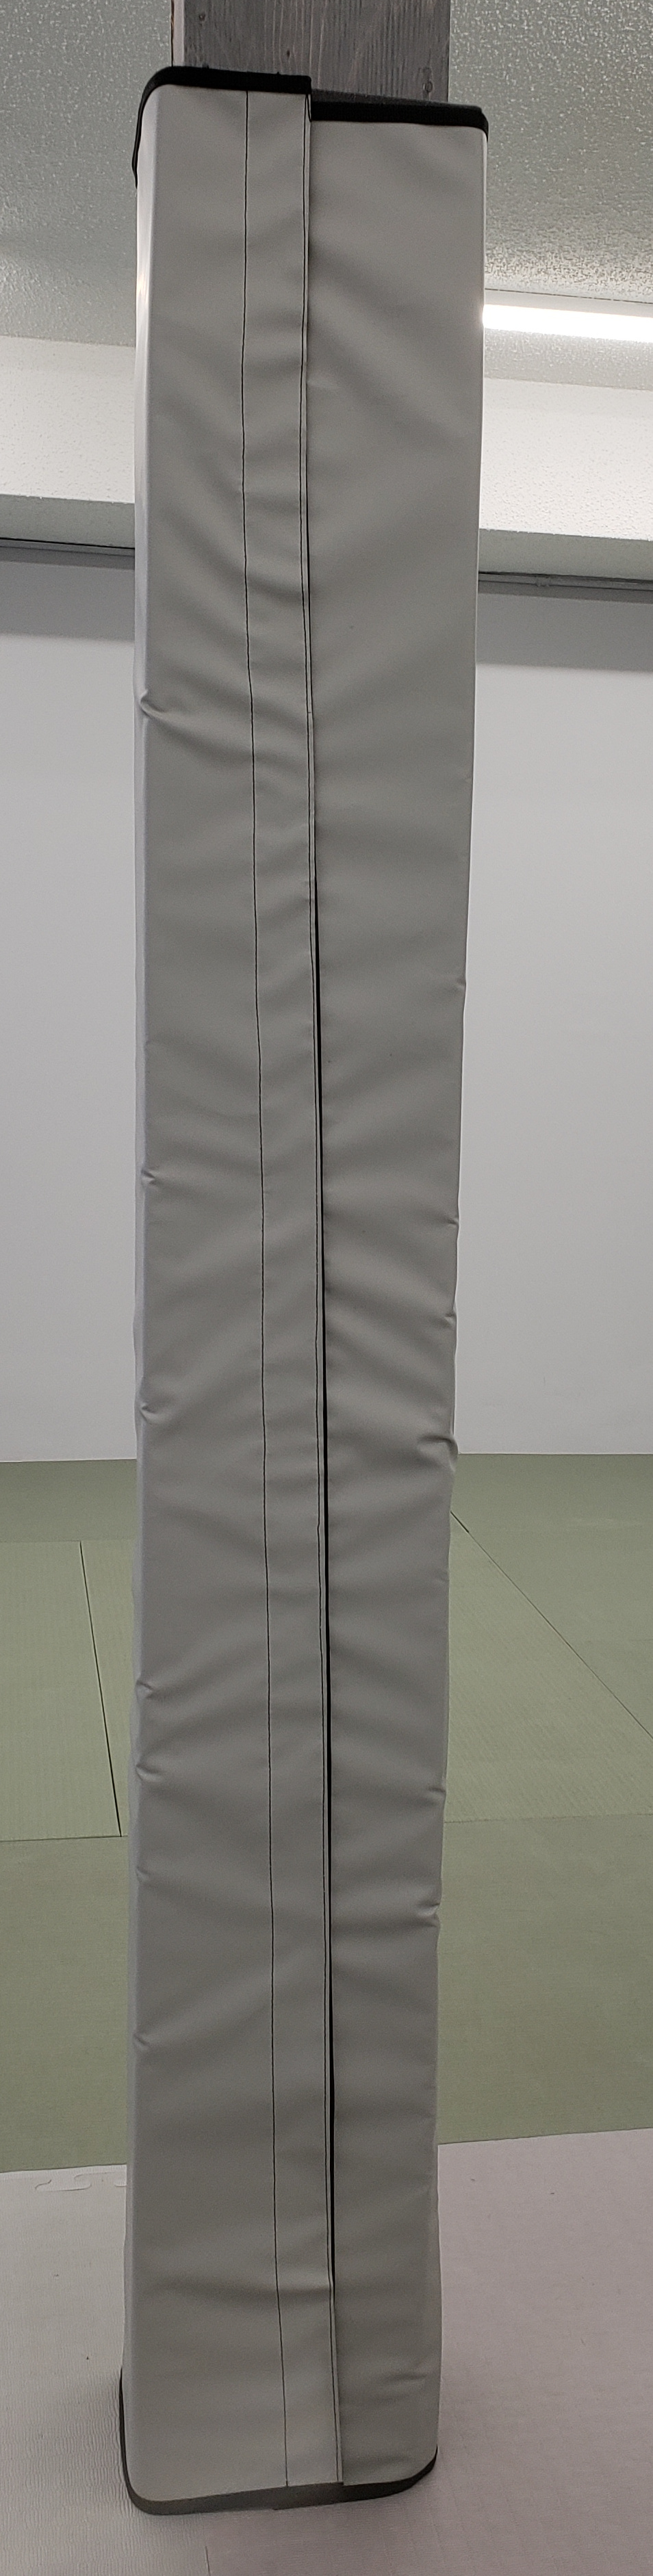 Padded Concrete Pole Cover